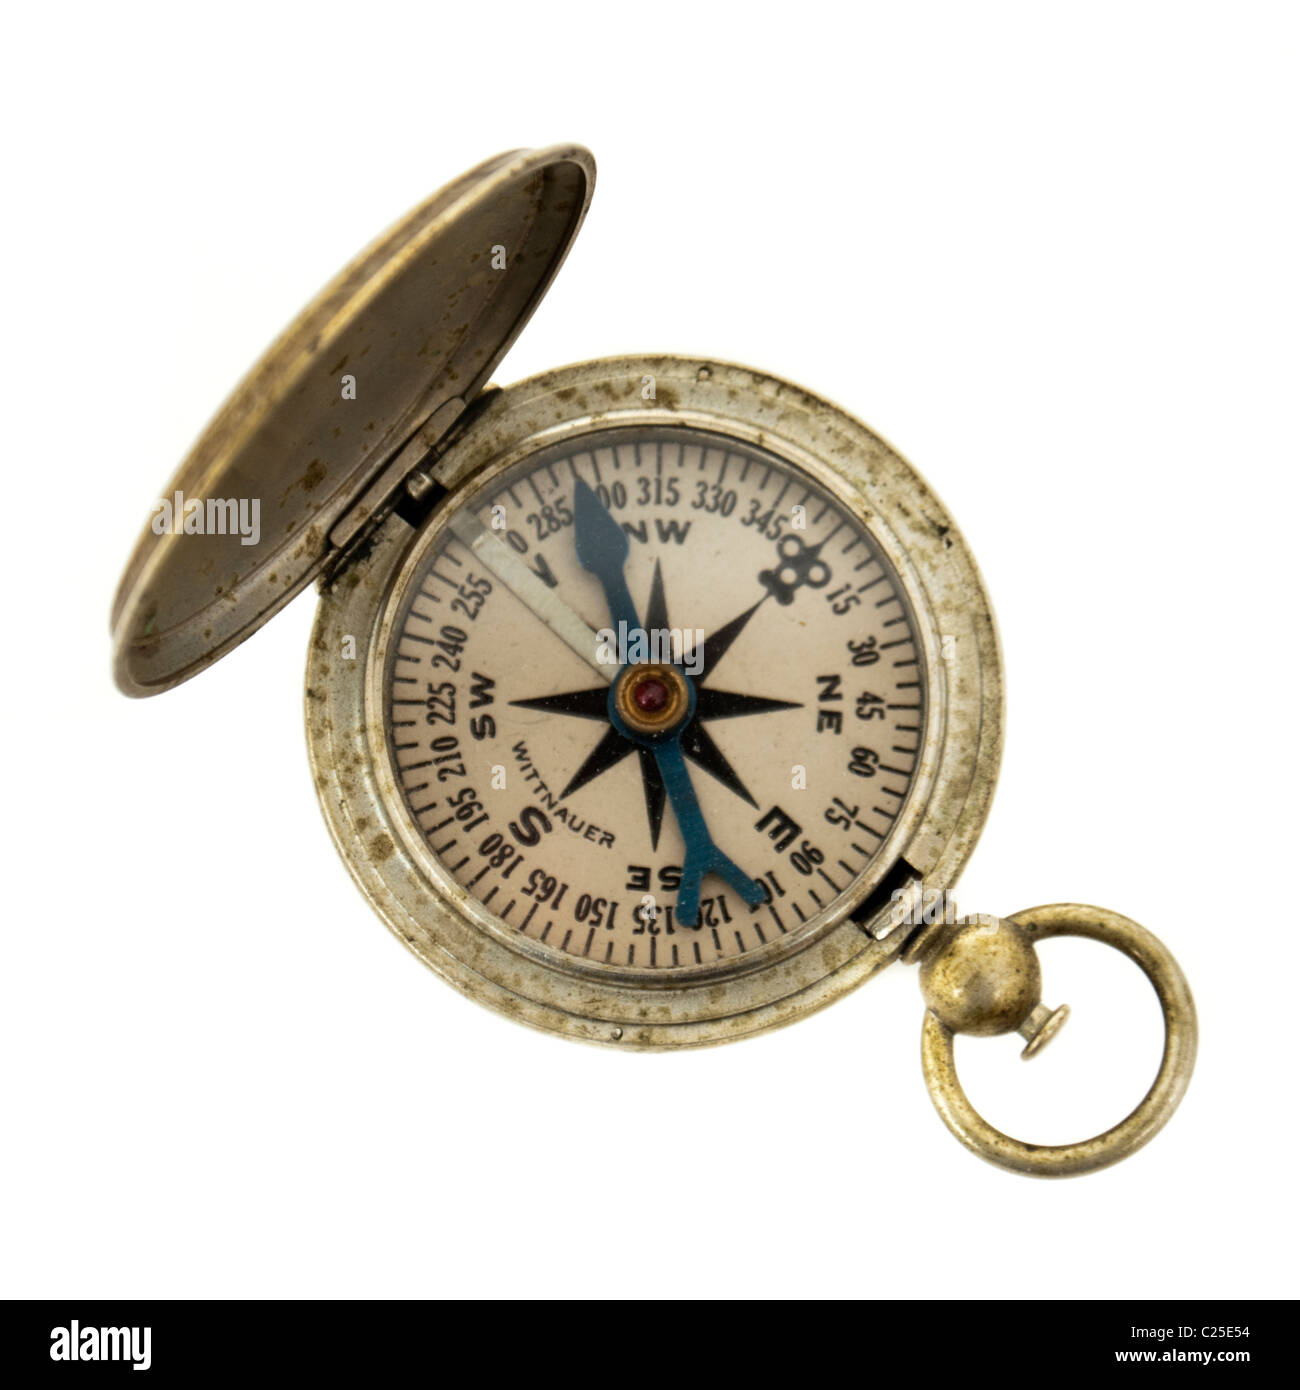 Vintage US Army Wittnauer compass - Stock Image